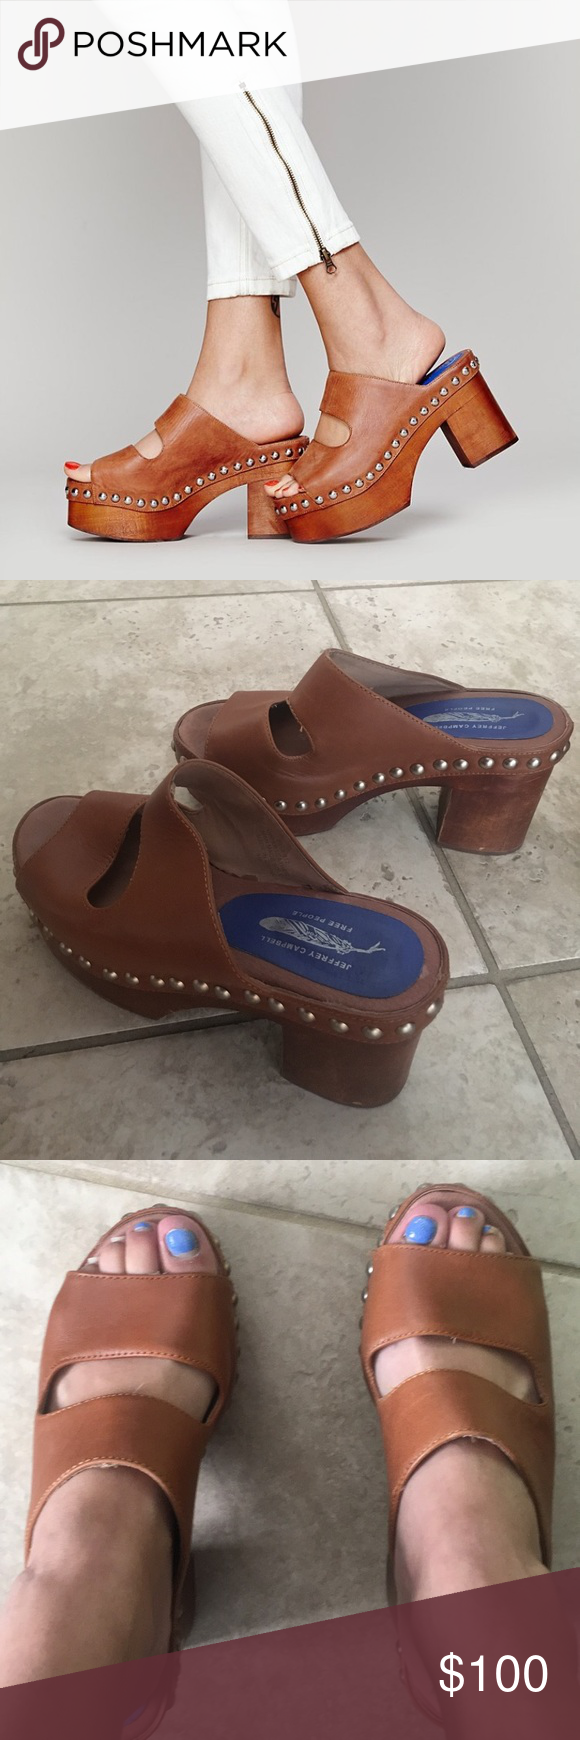 Free People X Jeffrey Campbell Westville Clog Super cute free people Jeffrey Campbell clogs! In good condition with minor scuffs. Leather clogs with studs. 4inch heel. Comfortable to walk in! No longer available in stores! Free People Shoes Mules & Clogs